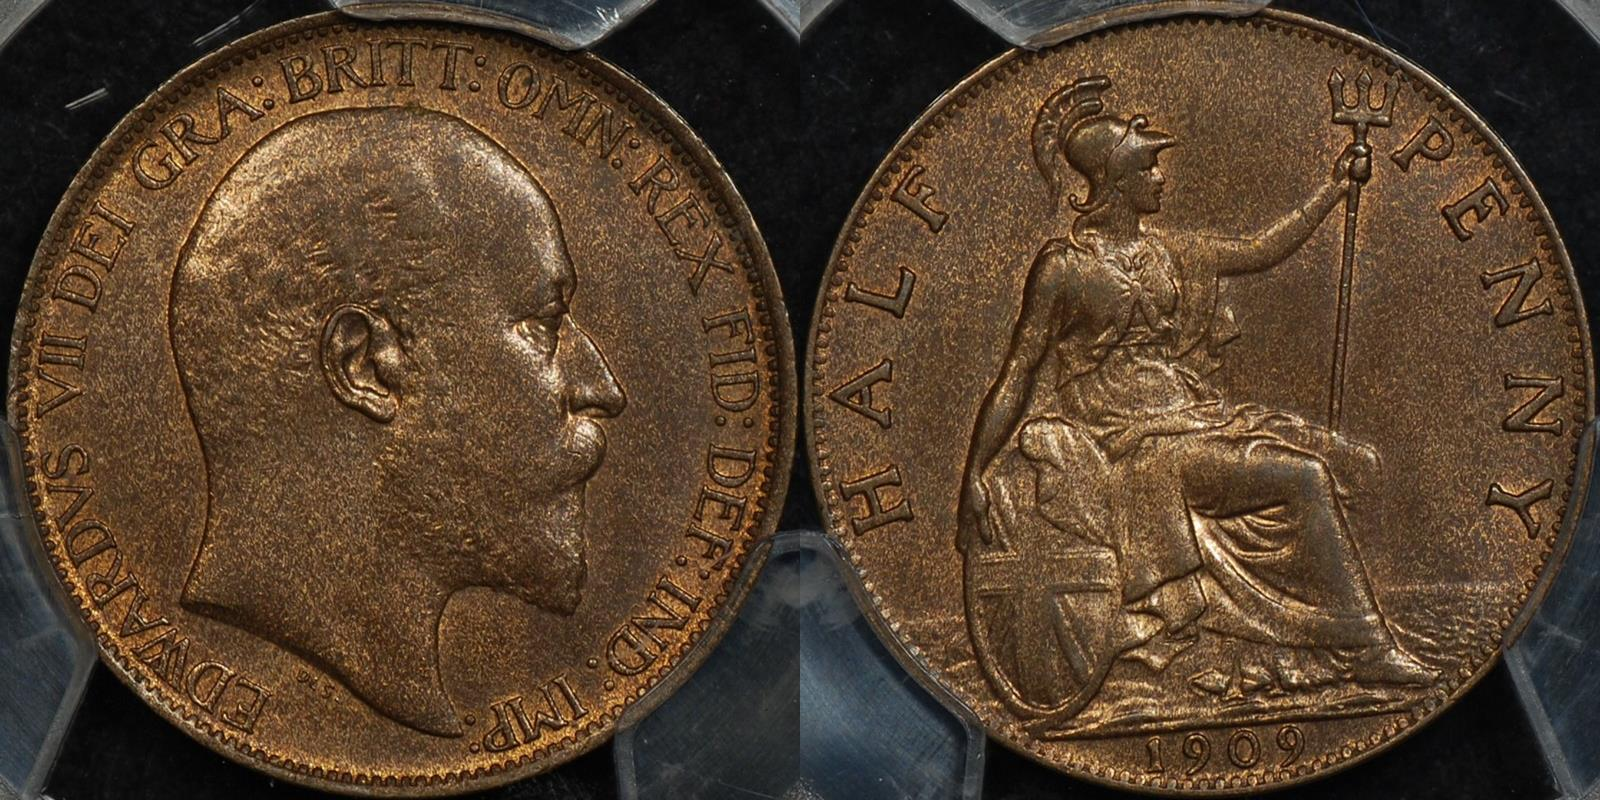 Great britain 1909 halfpenny 1 2d km 793.2 PCGS MS64rb Choice Uncirculated